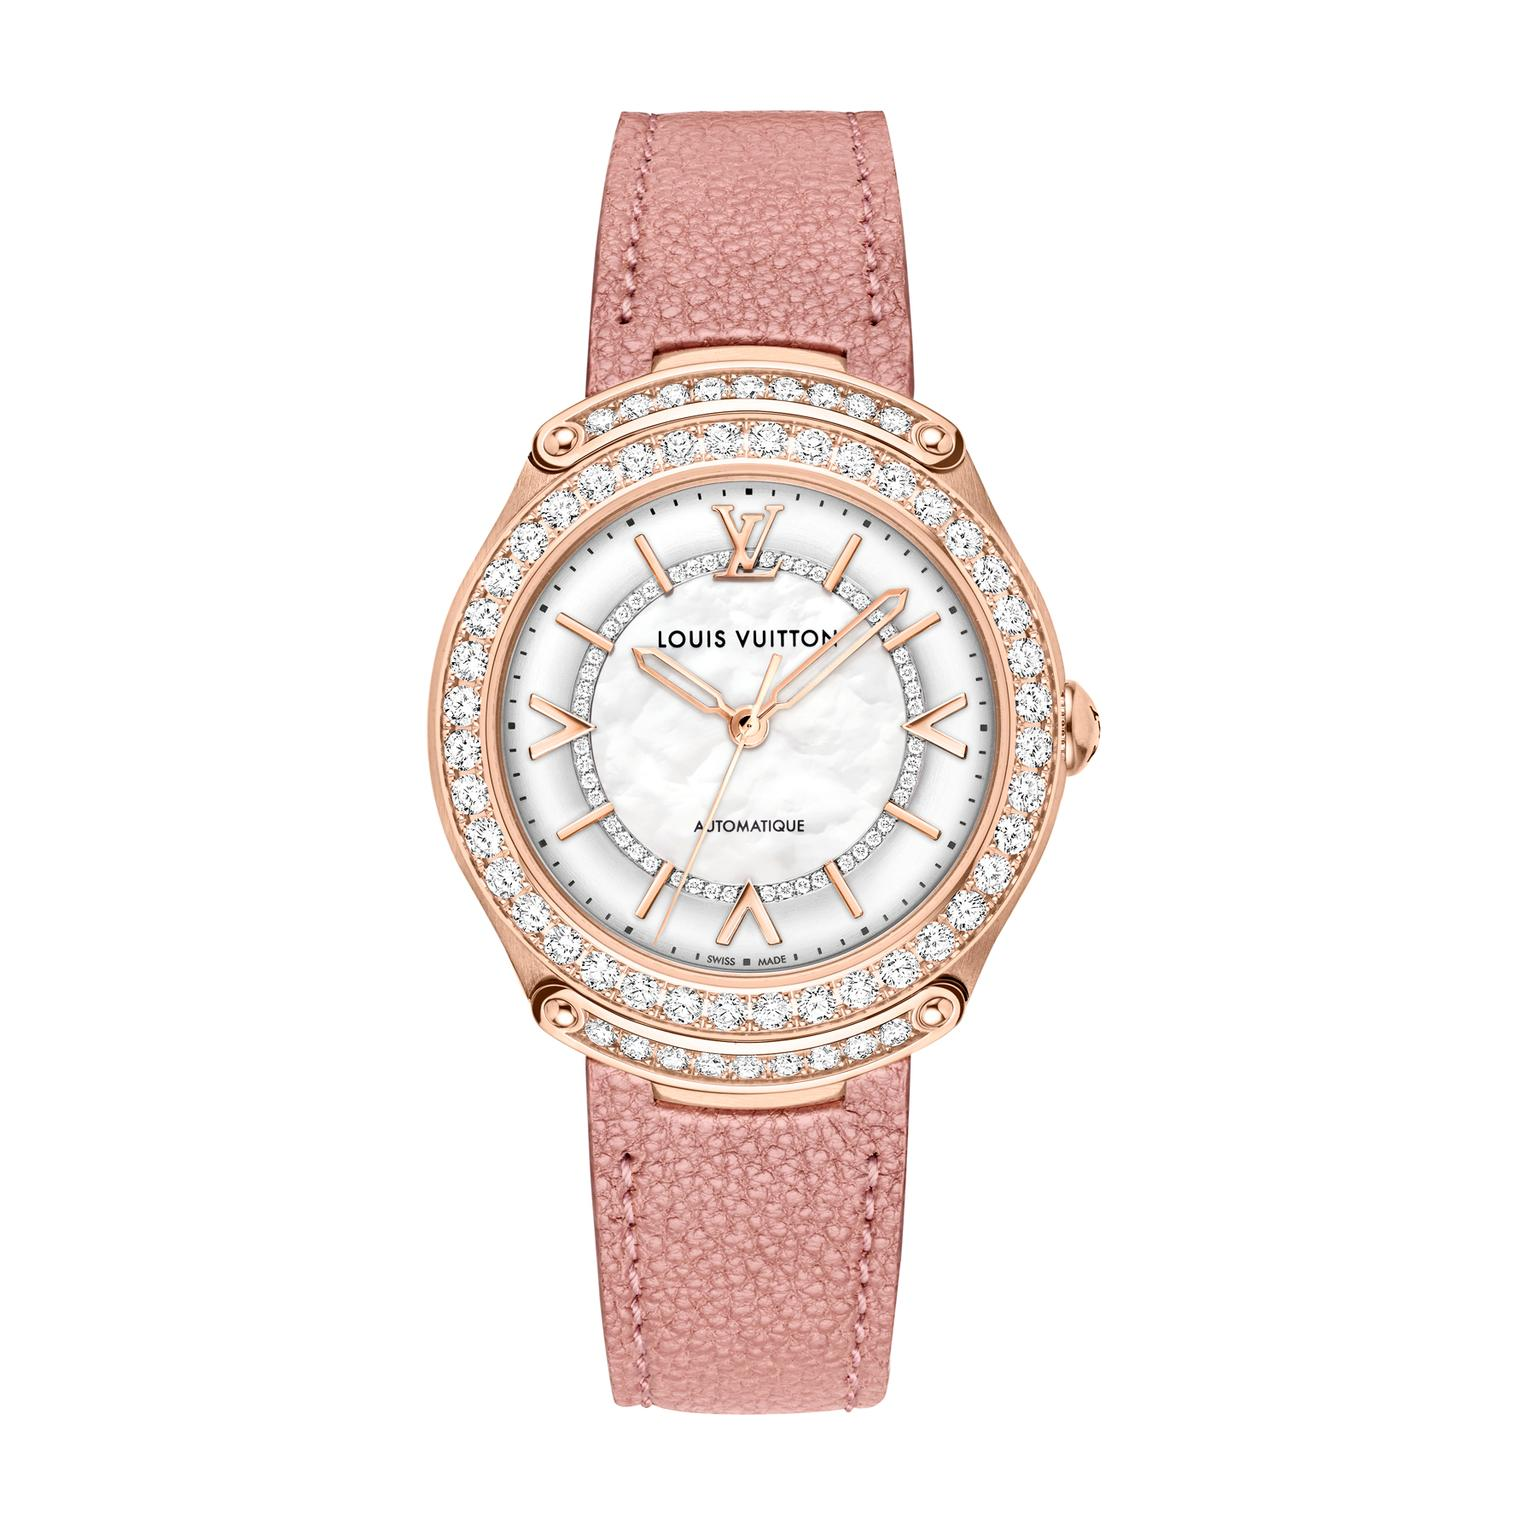 LV Fifty Five watch in pink gold and diamonds